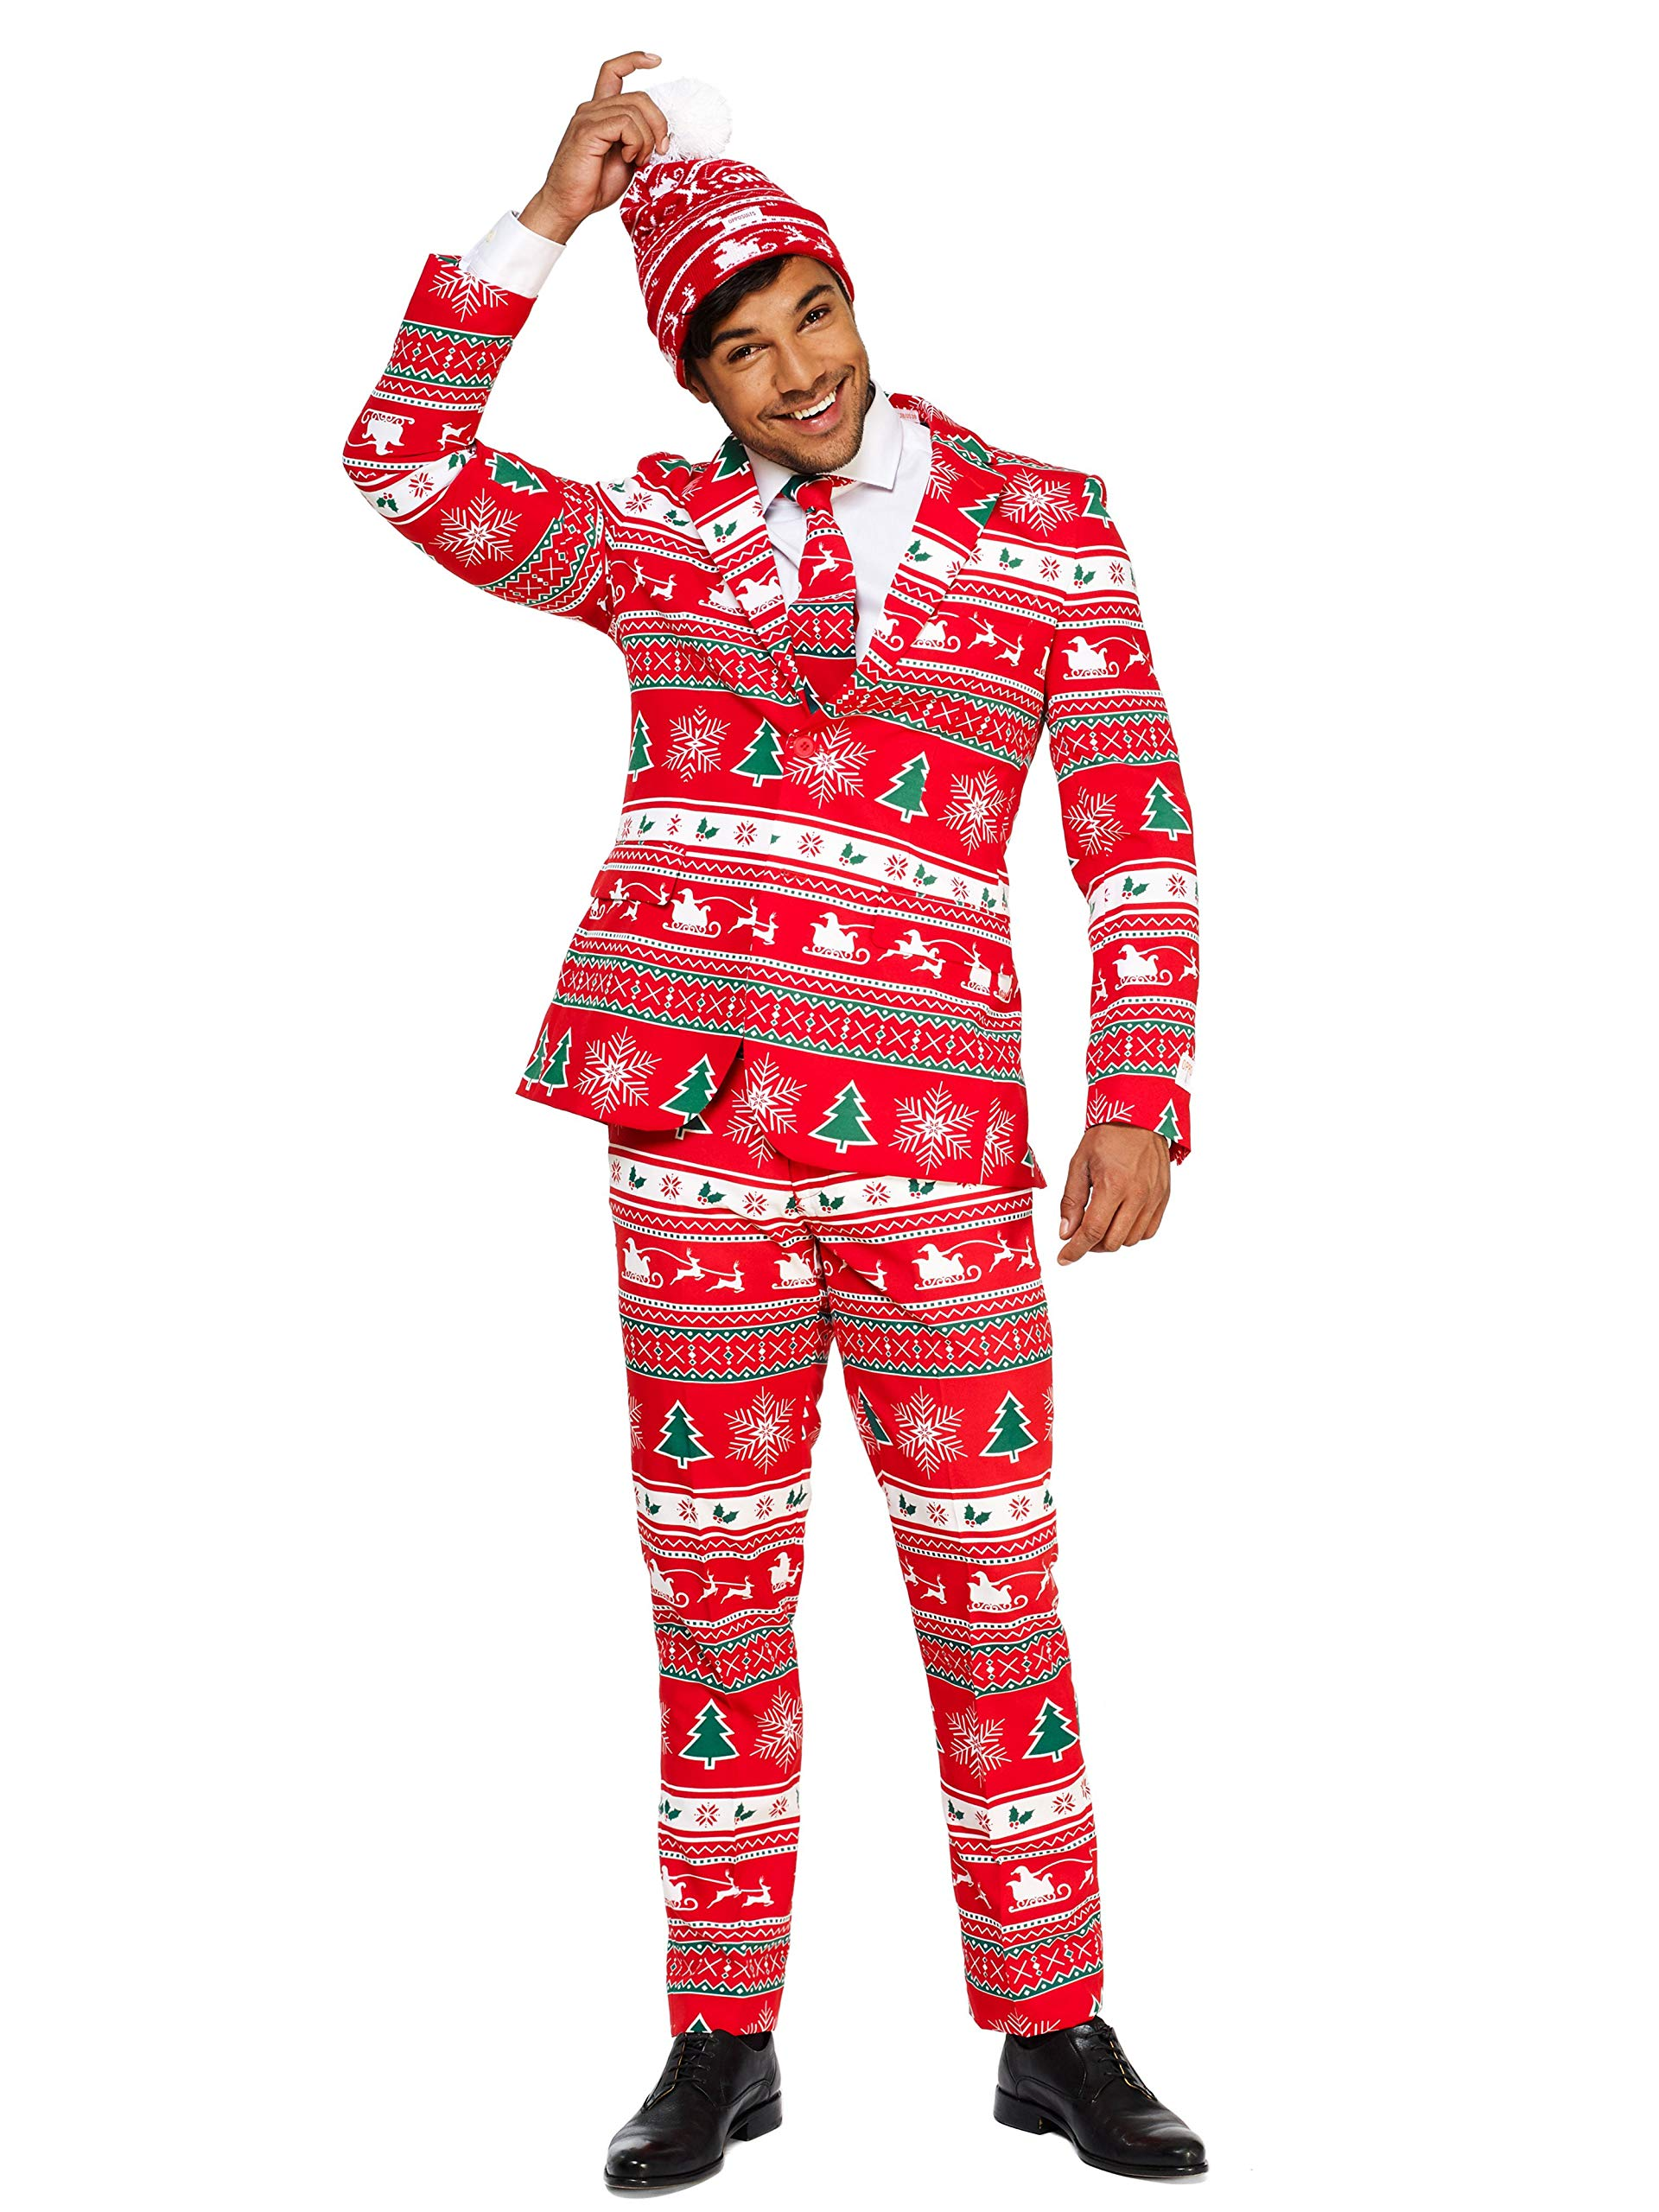 52ee688967d1a2 OppoSuits Christmas Suits for Men in Different Prints – Ugly Xmas Sweater  Costumes Include Jacket Pants ...